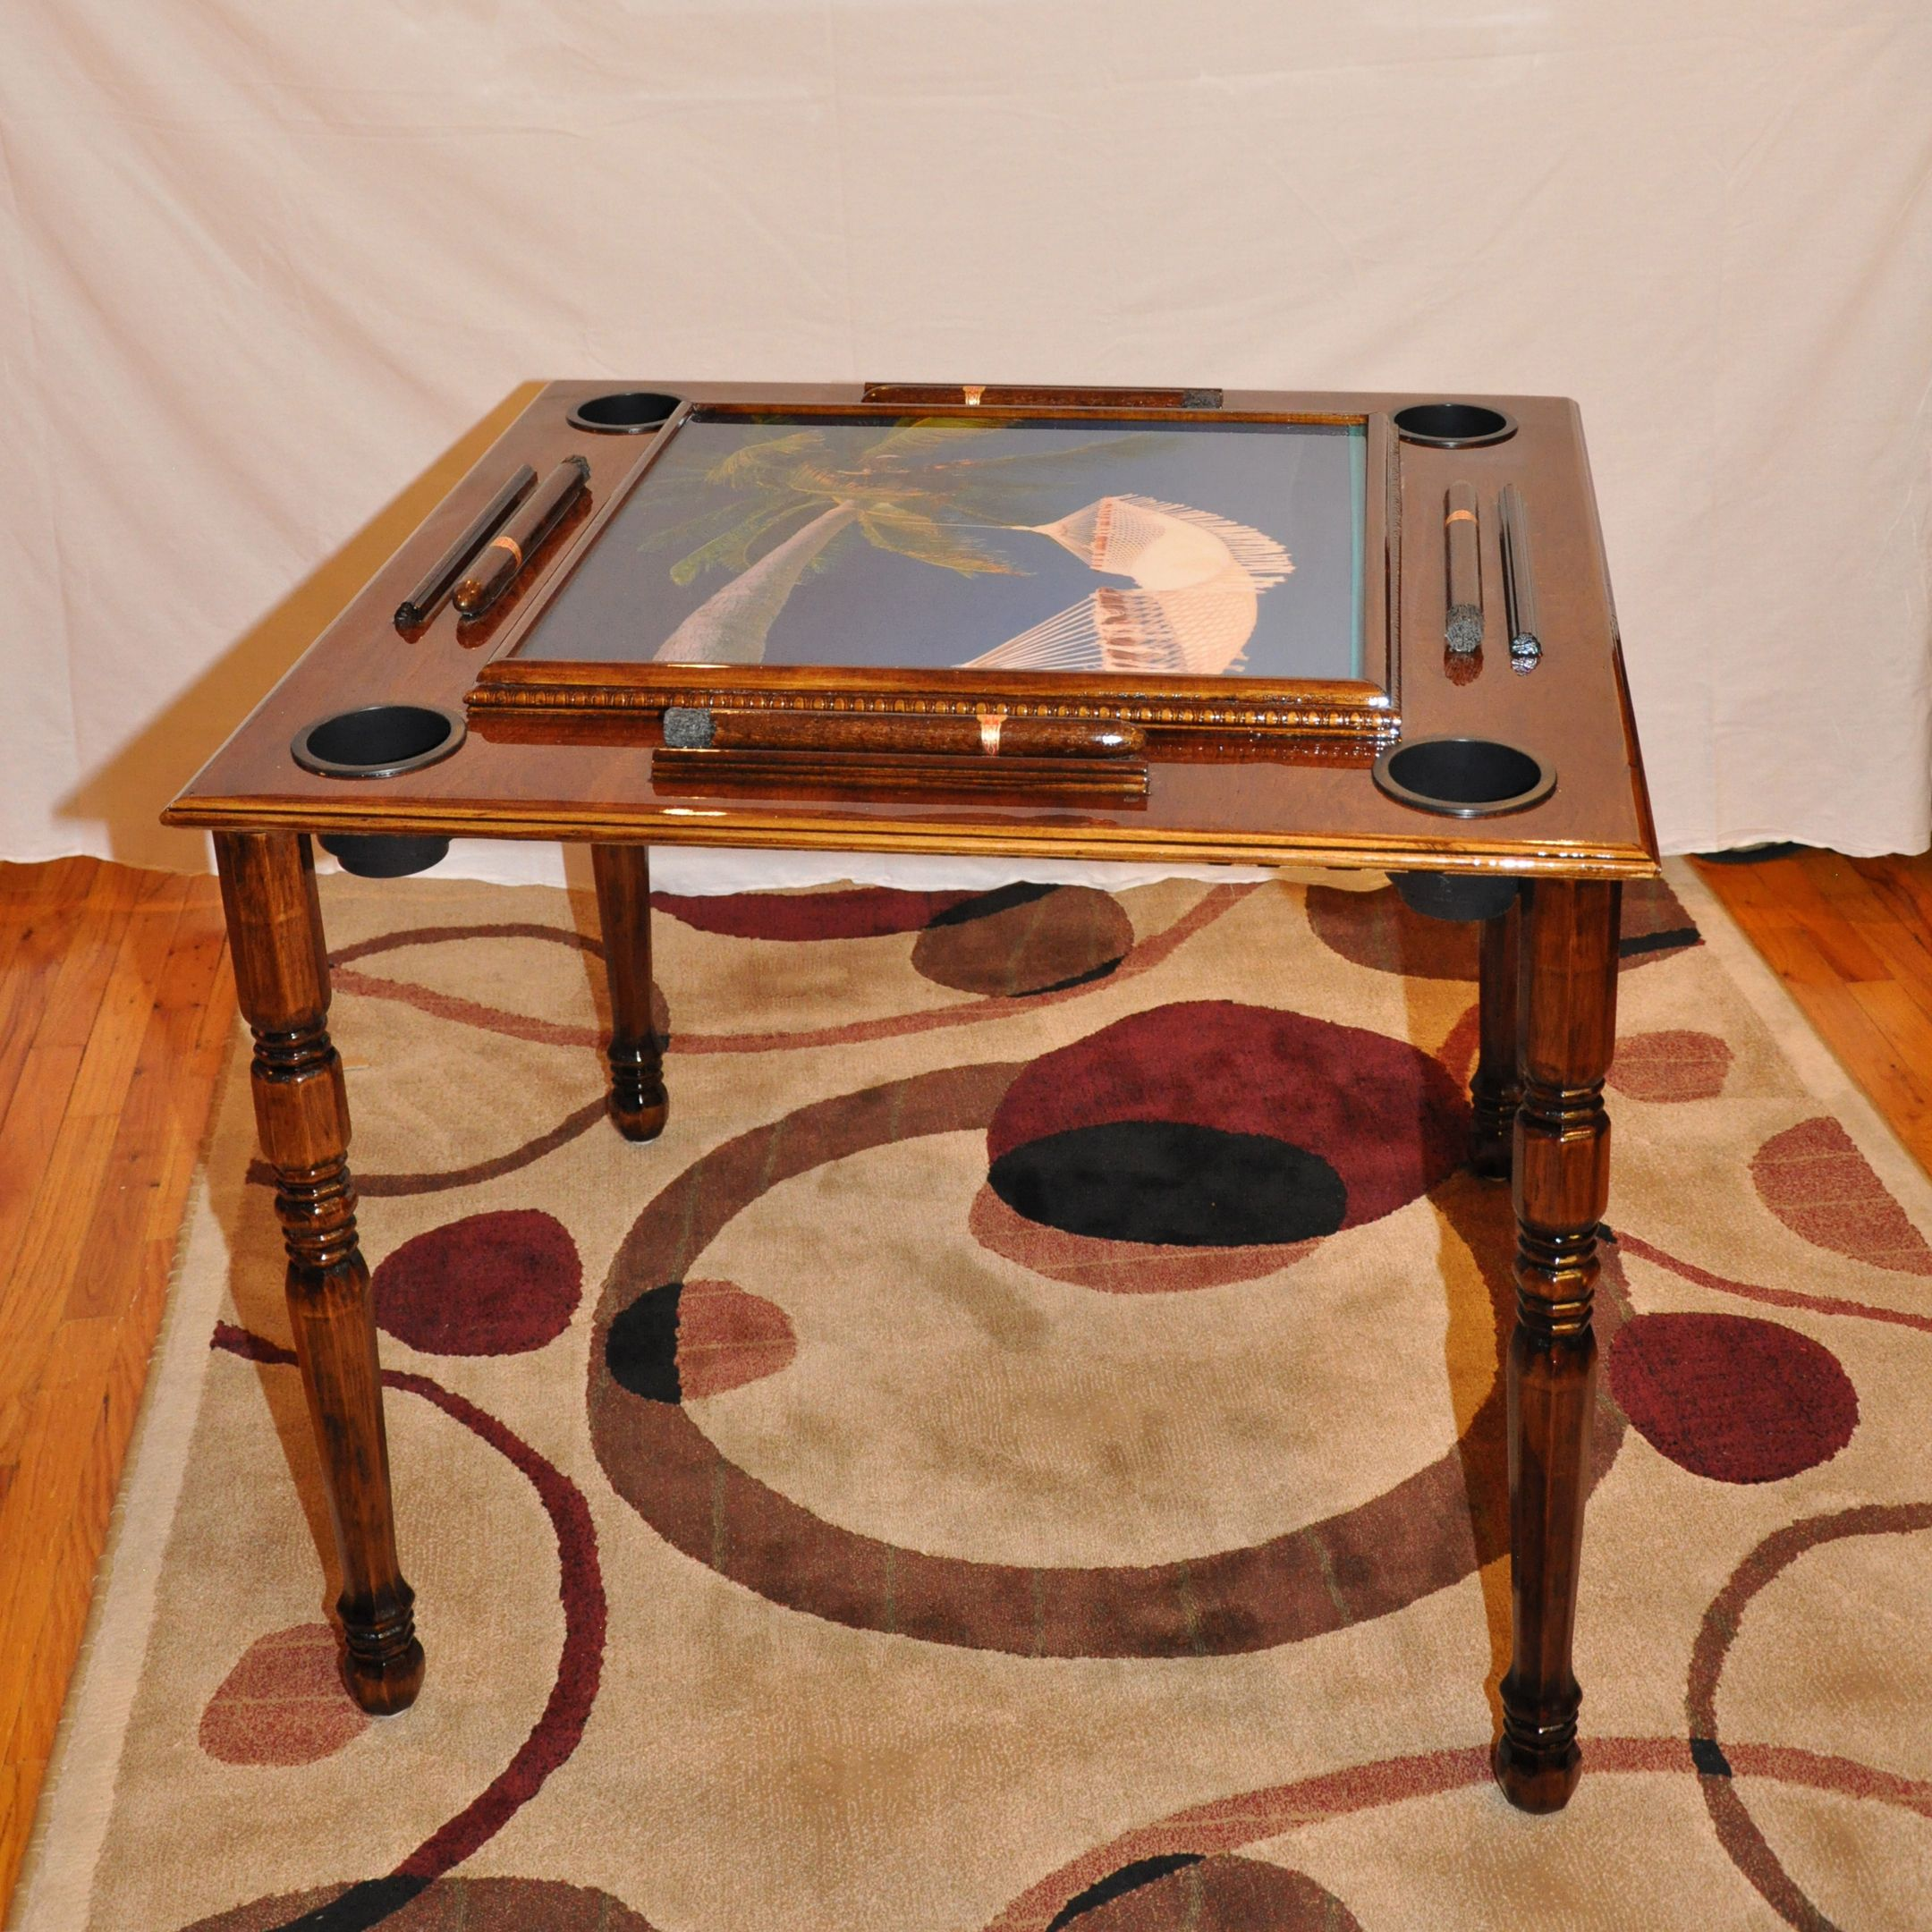 This gorgeous domino table will be going out to its new